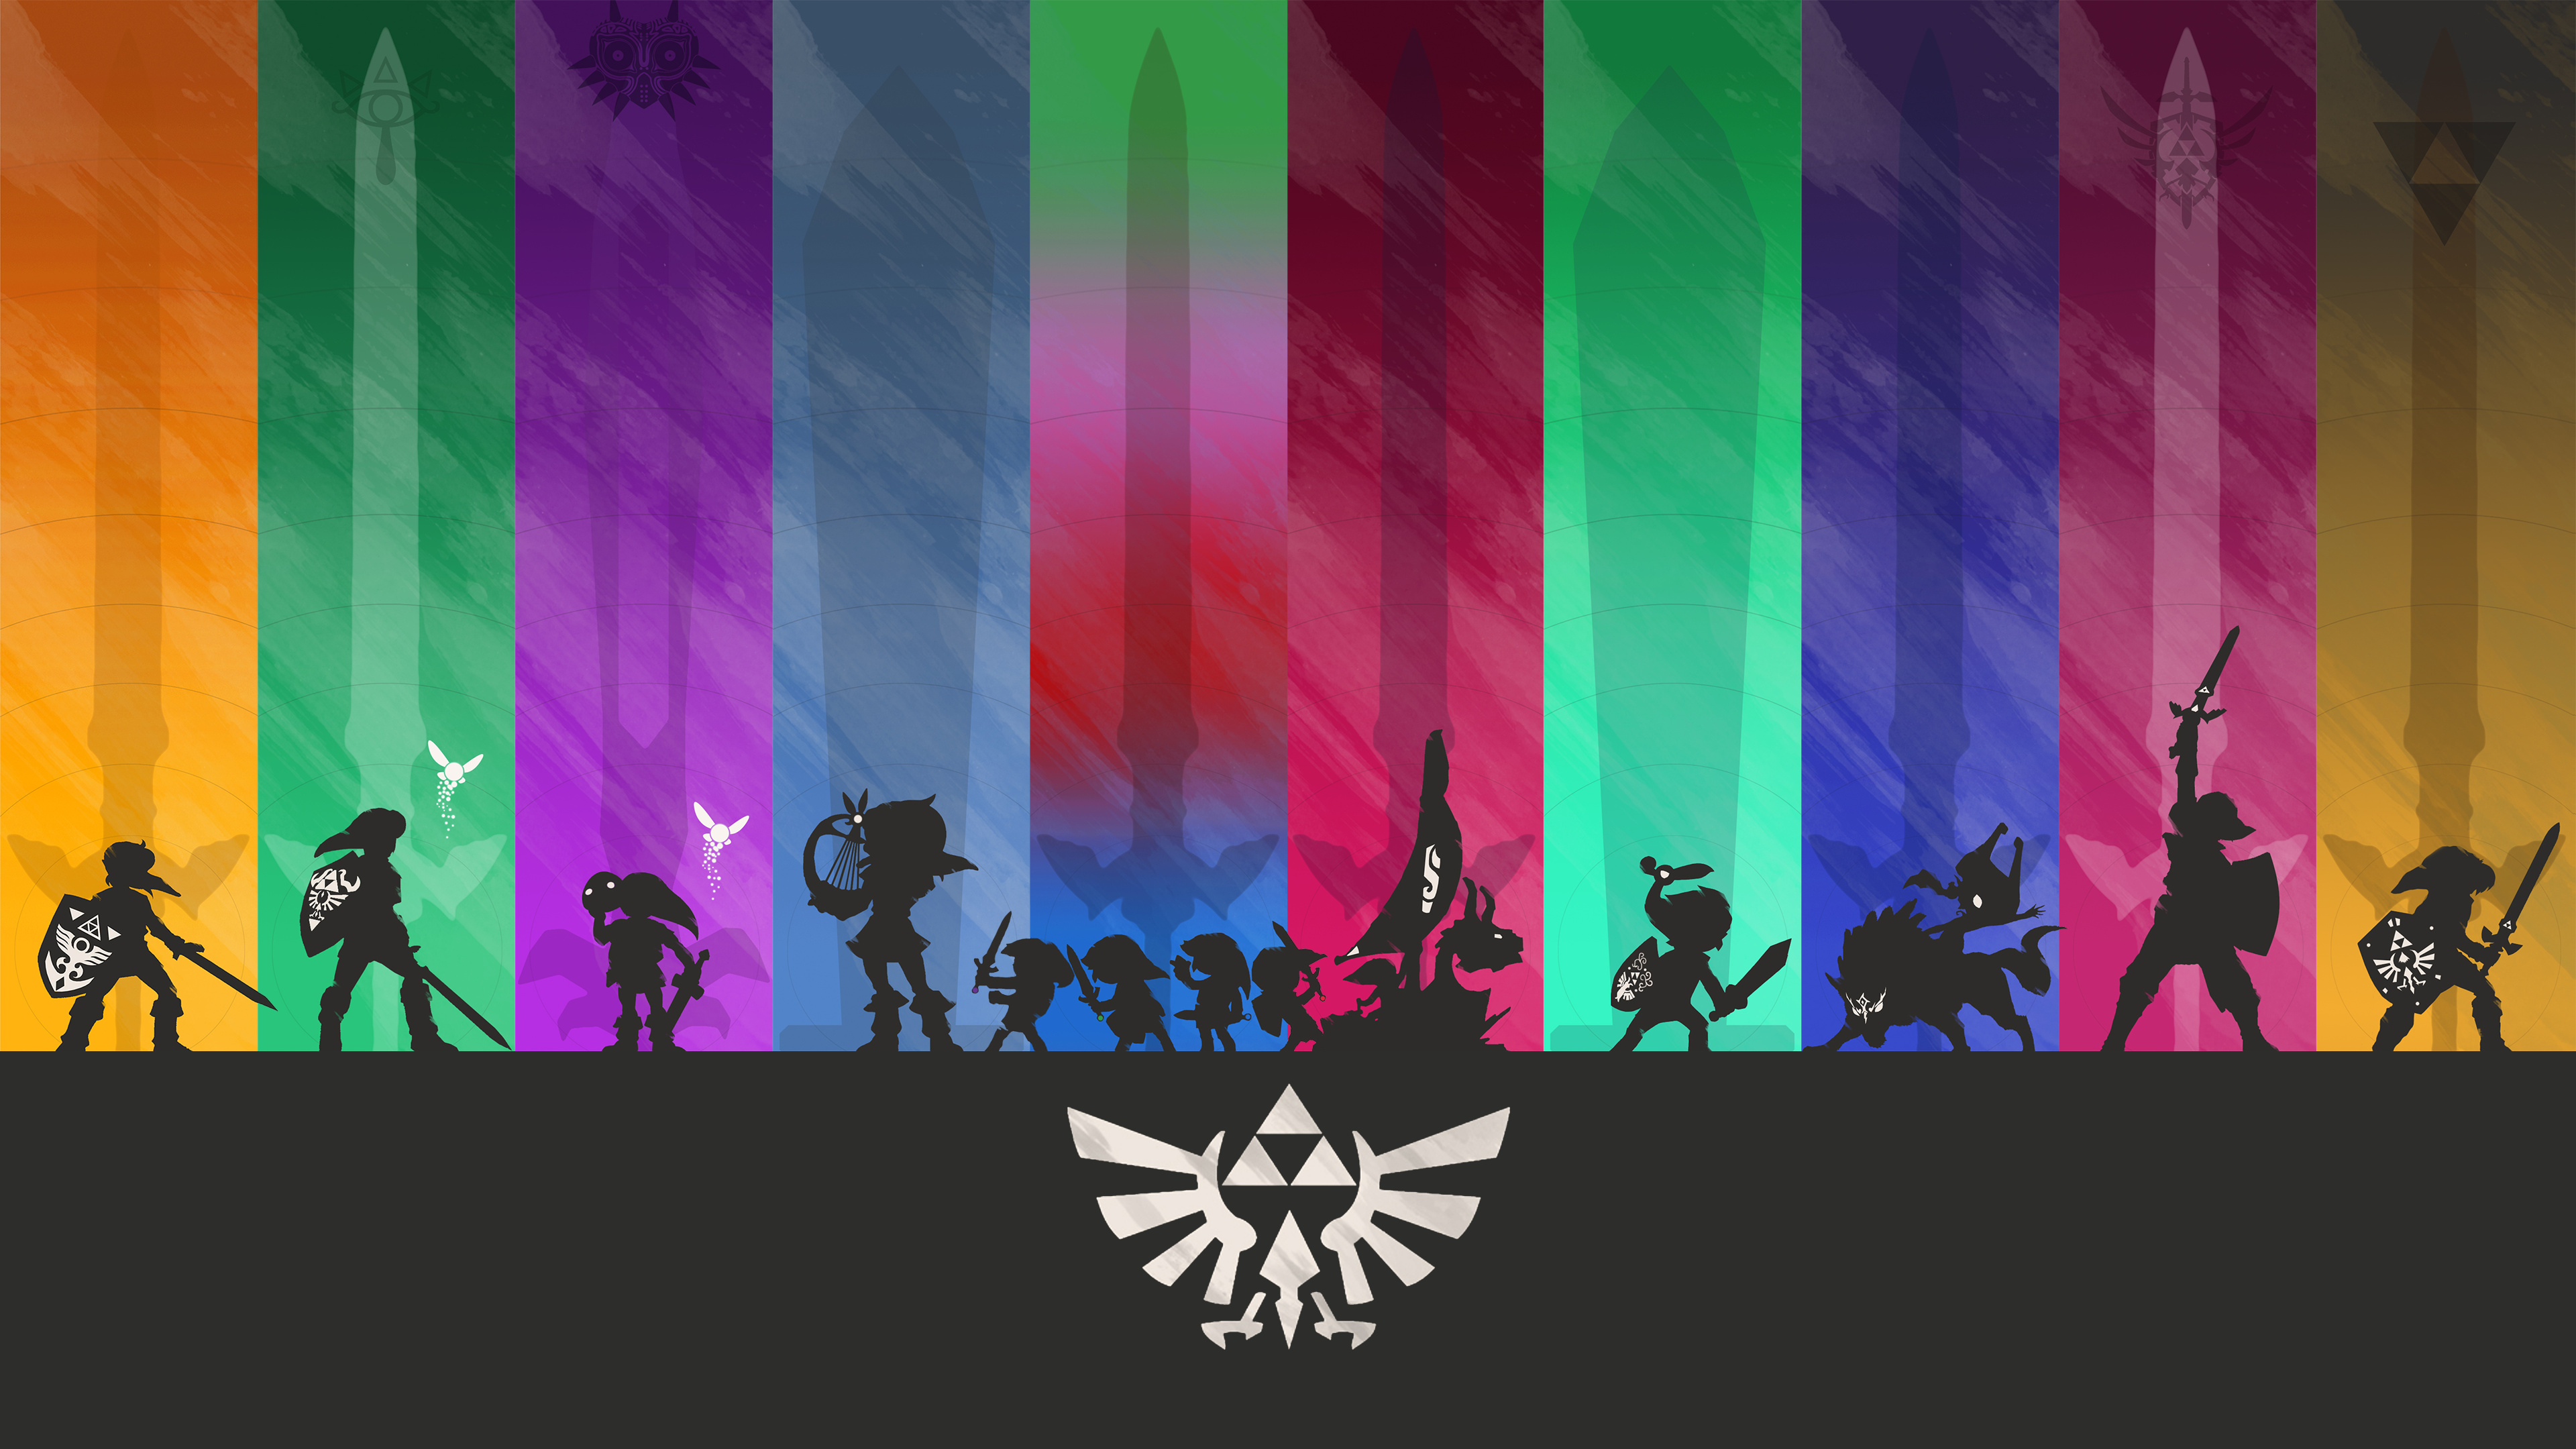 Minimalistic Legend of Zelda Wallpaper 4K by henrikpw on DeviantArt